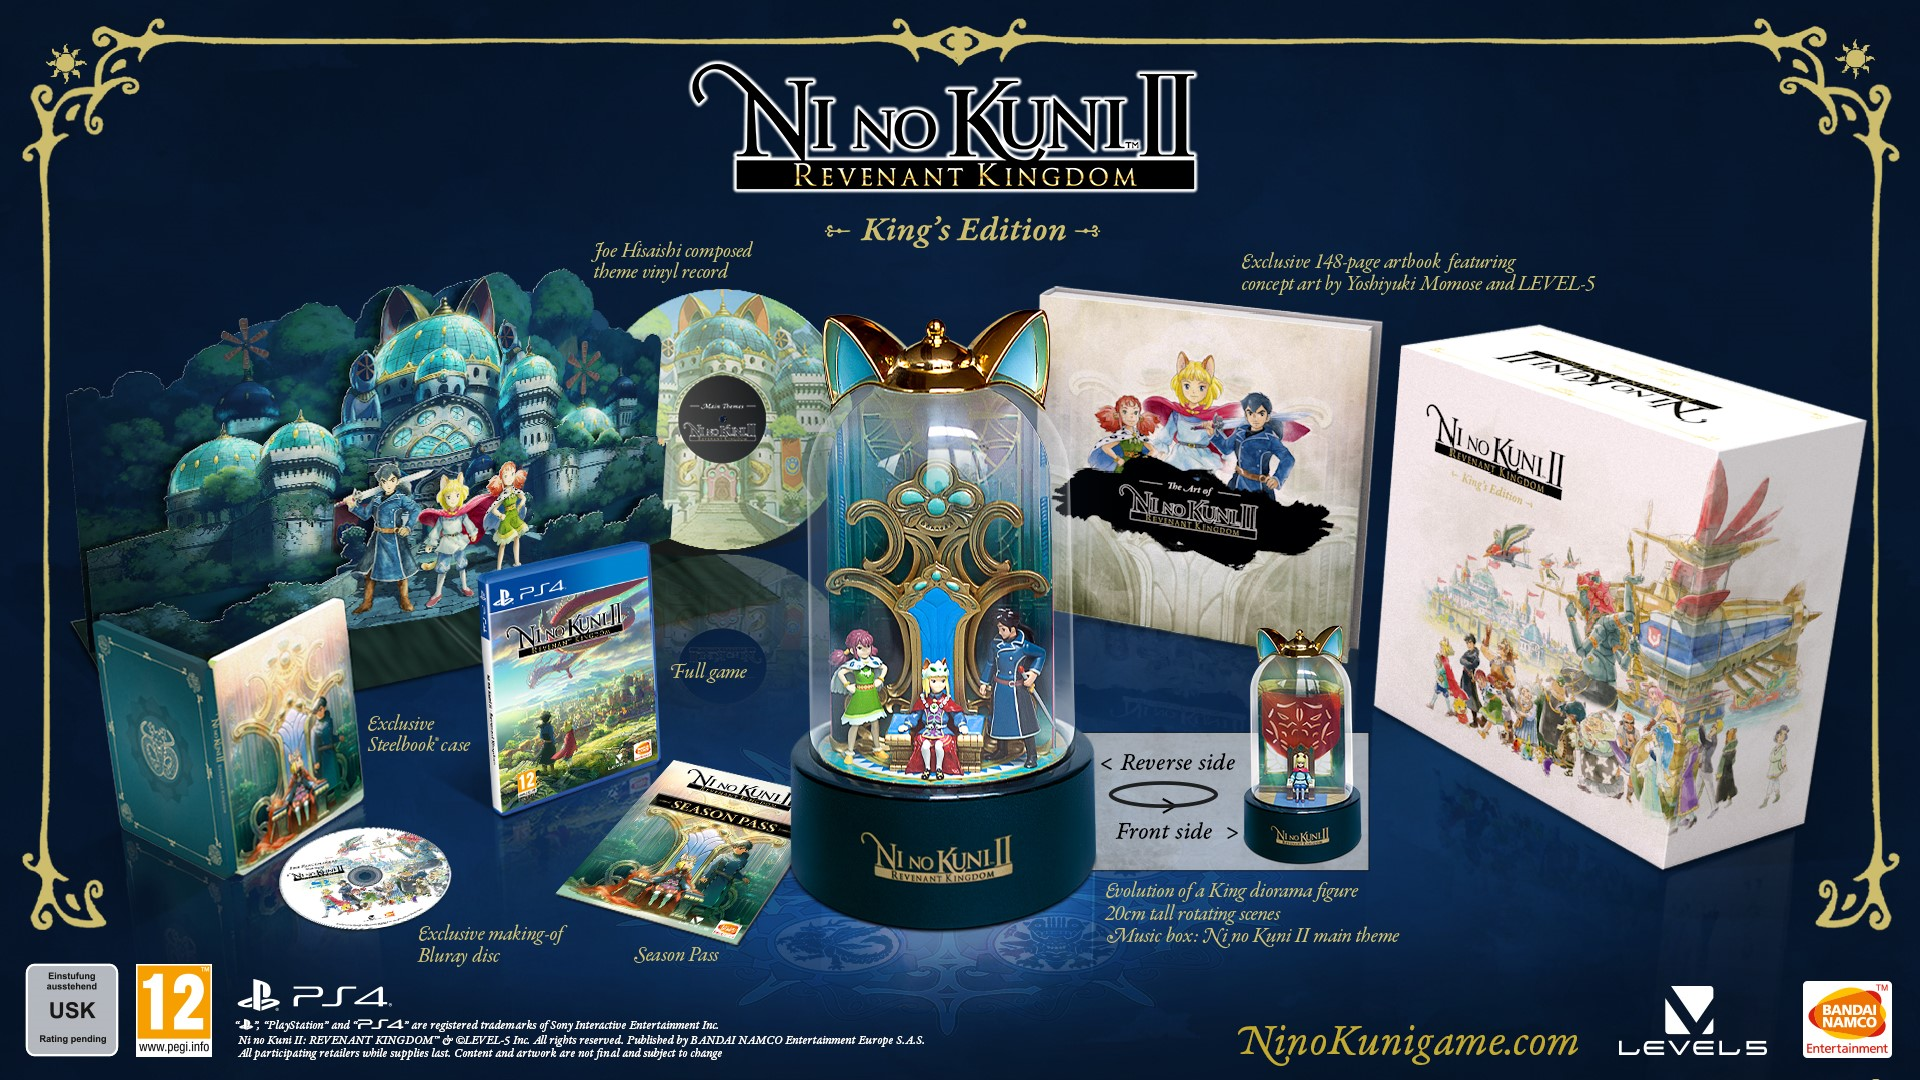 Here's what you'll get in the UK Ni no Kuni 2 PC special edition